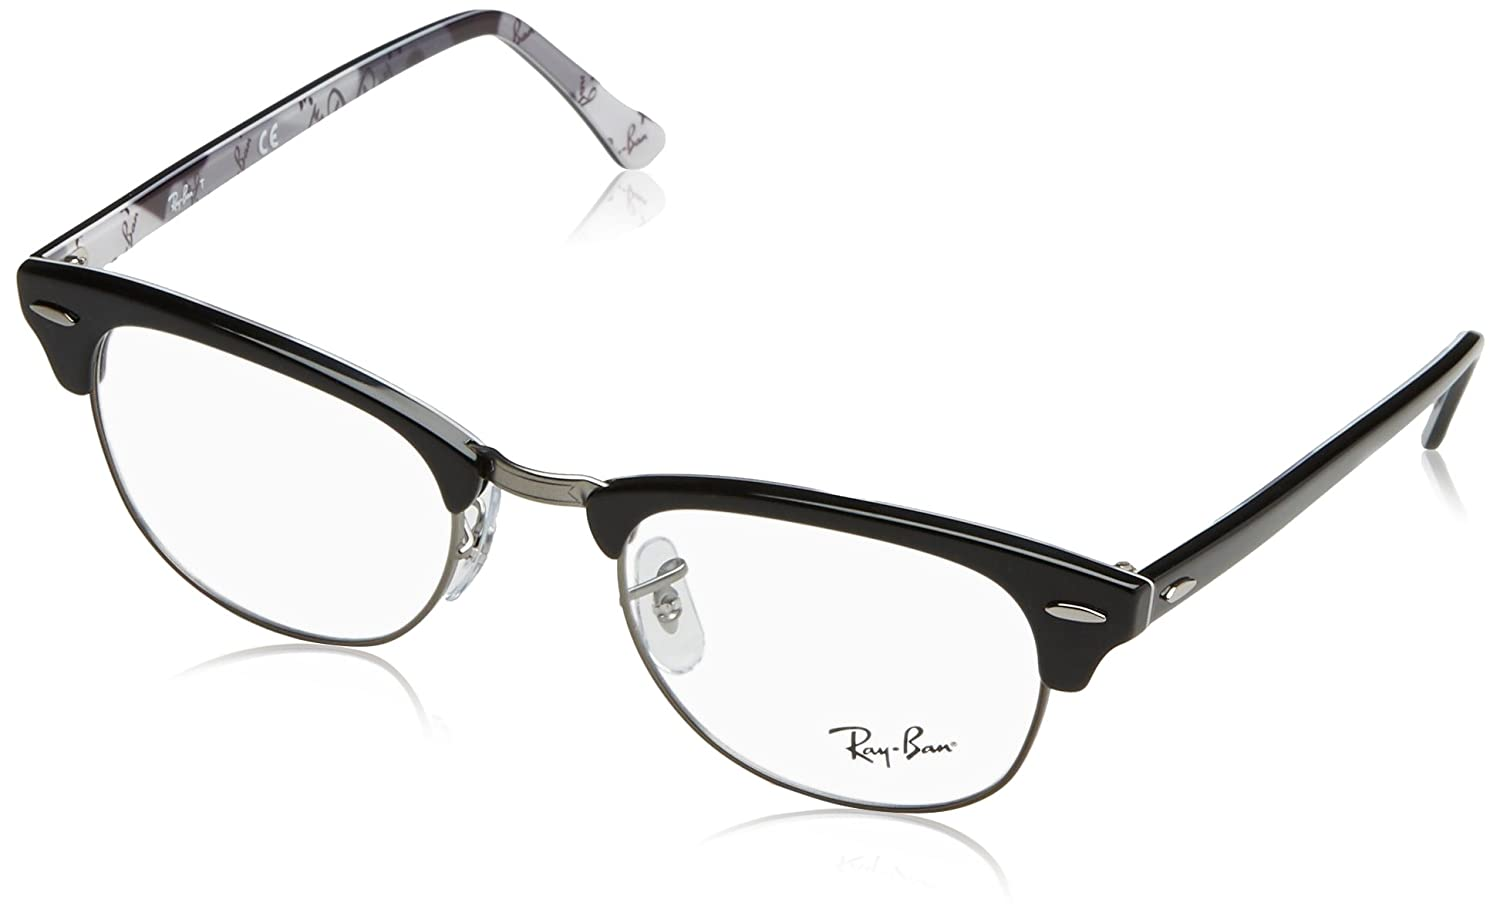 f29b5a4b52 Amazon.com  Ray-Ban Clubmaster No Polarization Square Prescription Eyewear  Frame